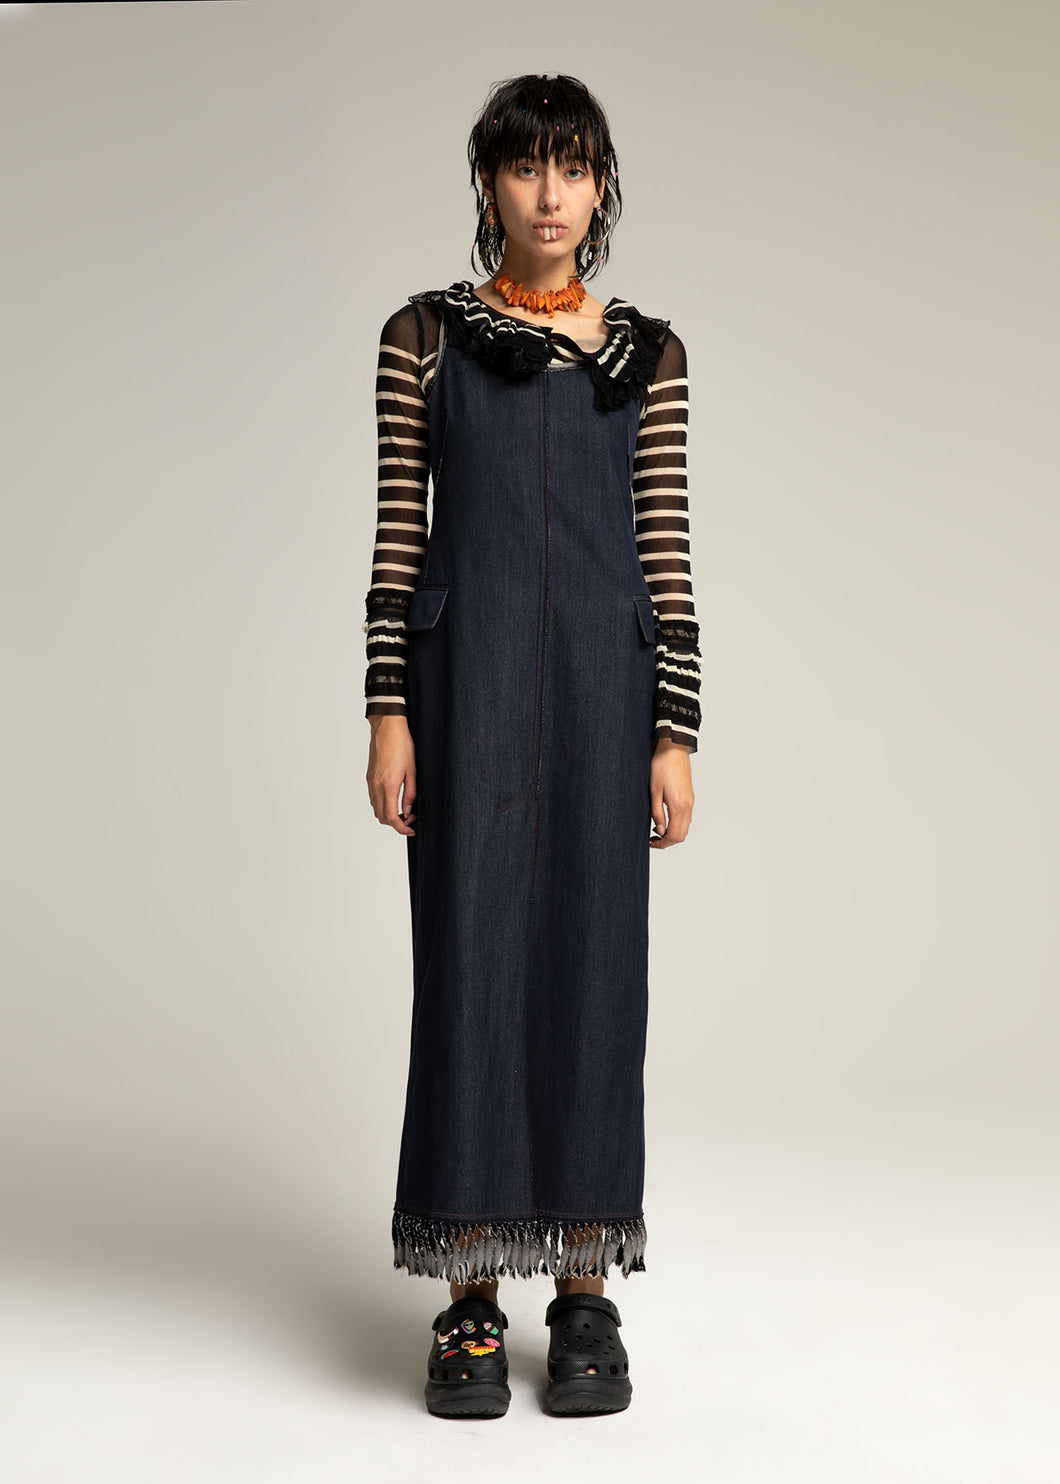 GAULTIER long denim dress